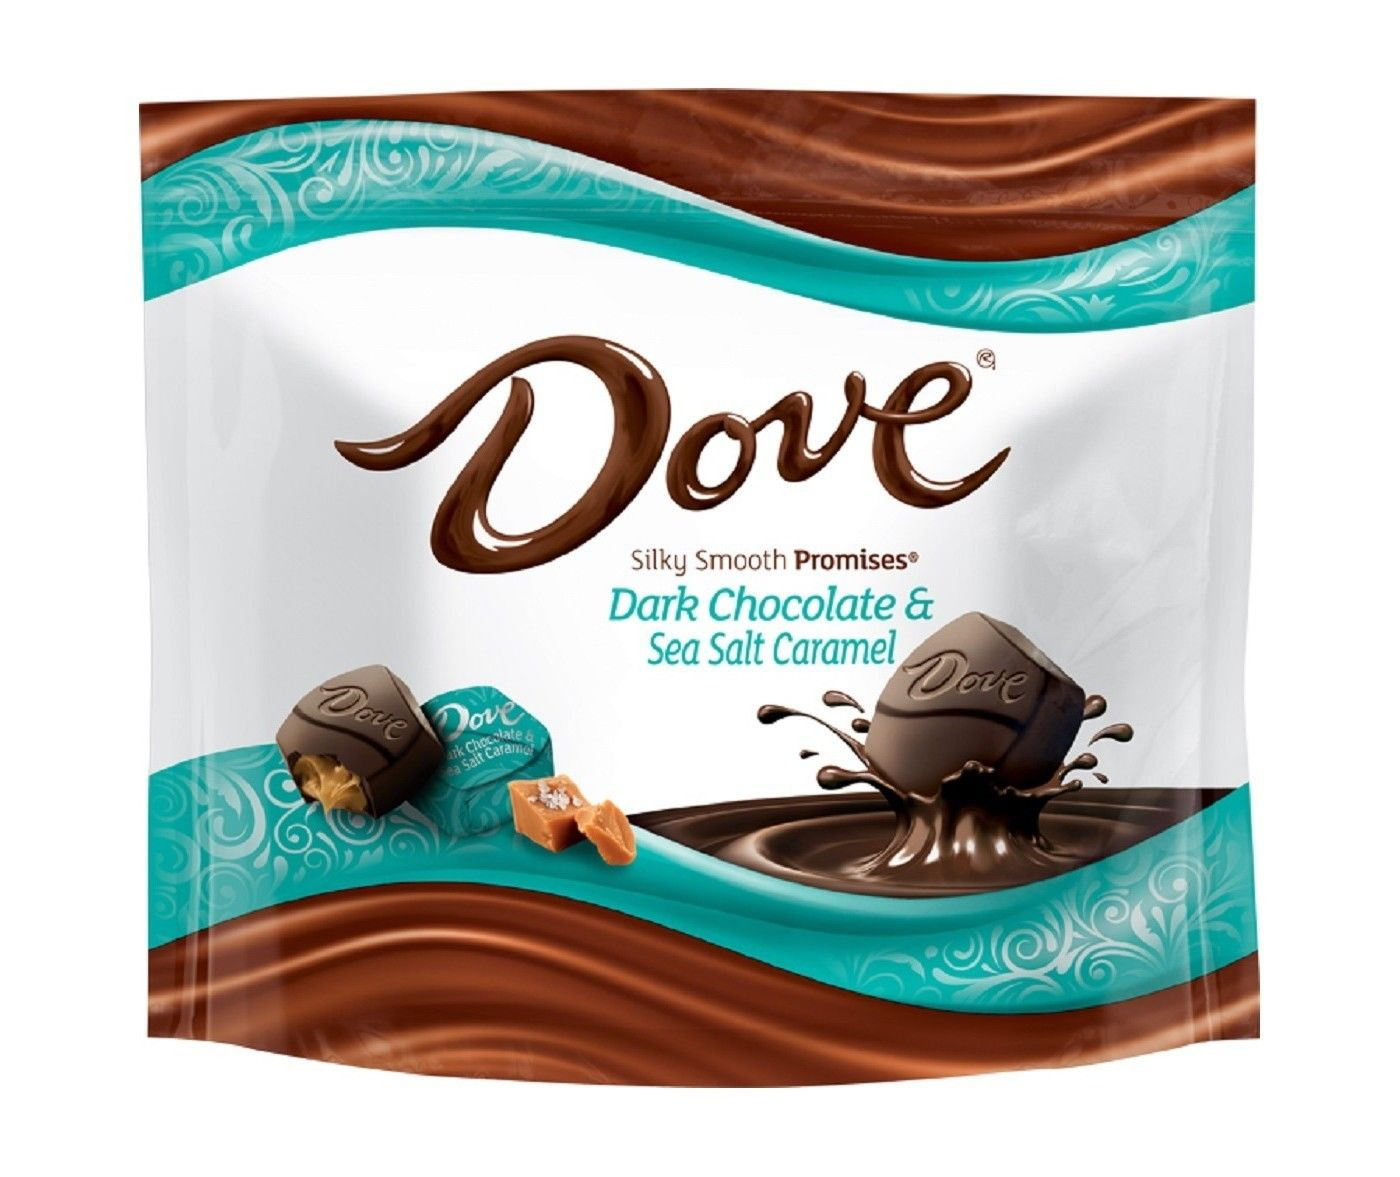 Dove Dark Chocolate & Sea Salt Caramel Silky Smooth Promises, 7.61oz Bag